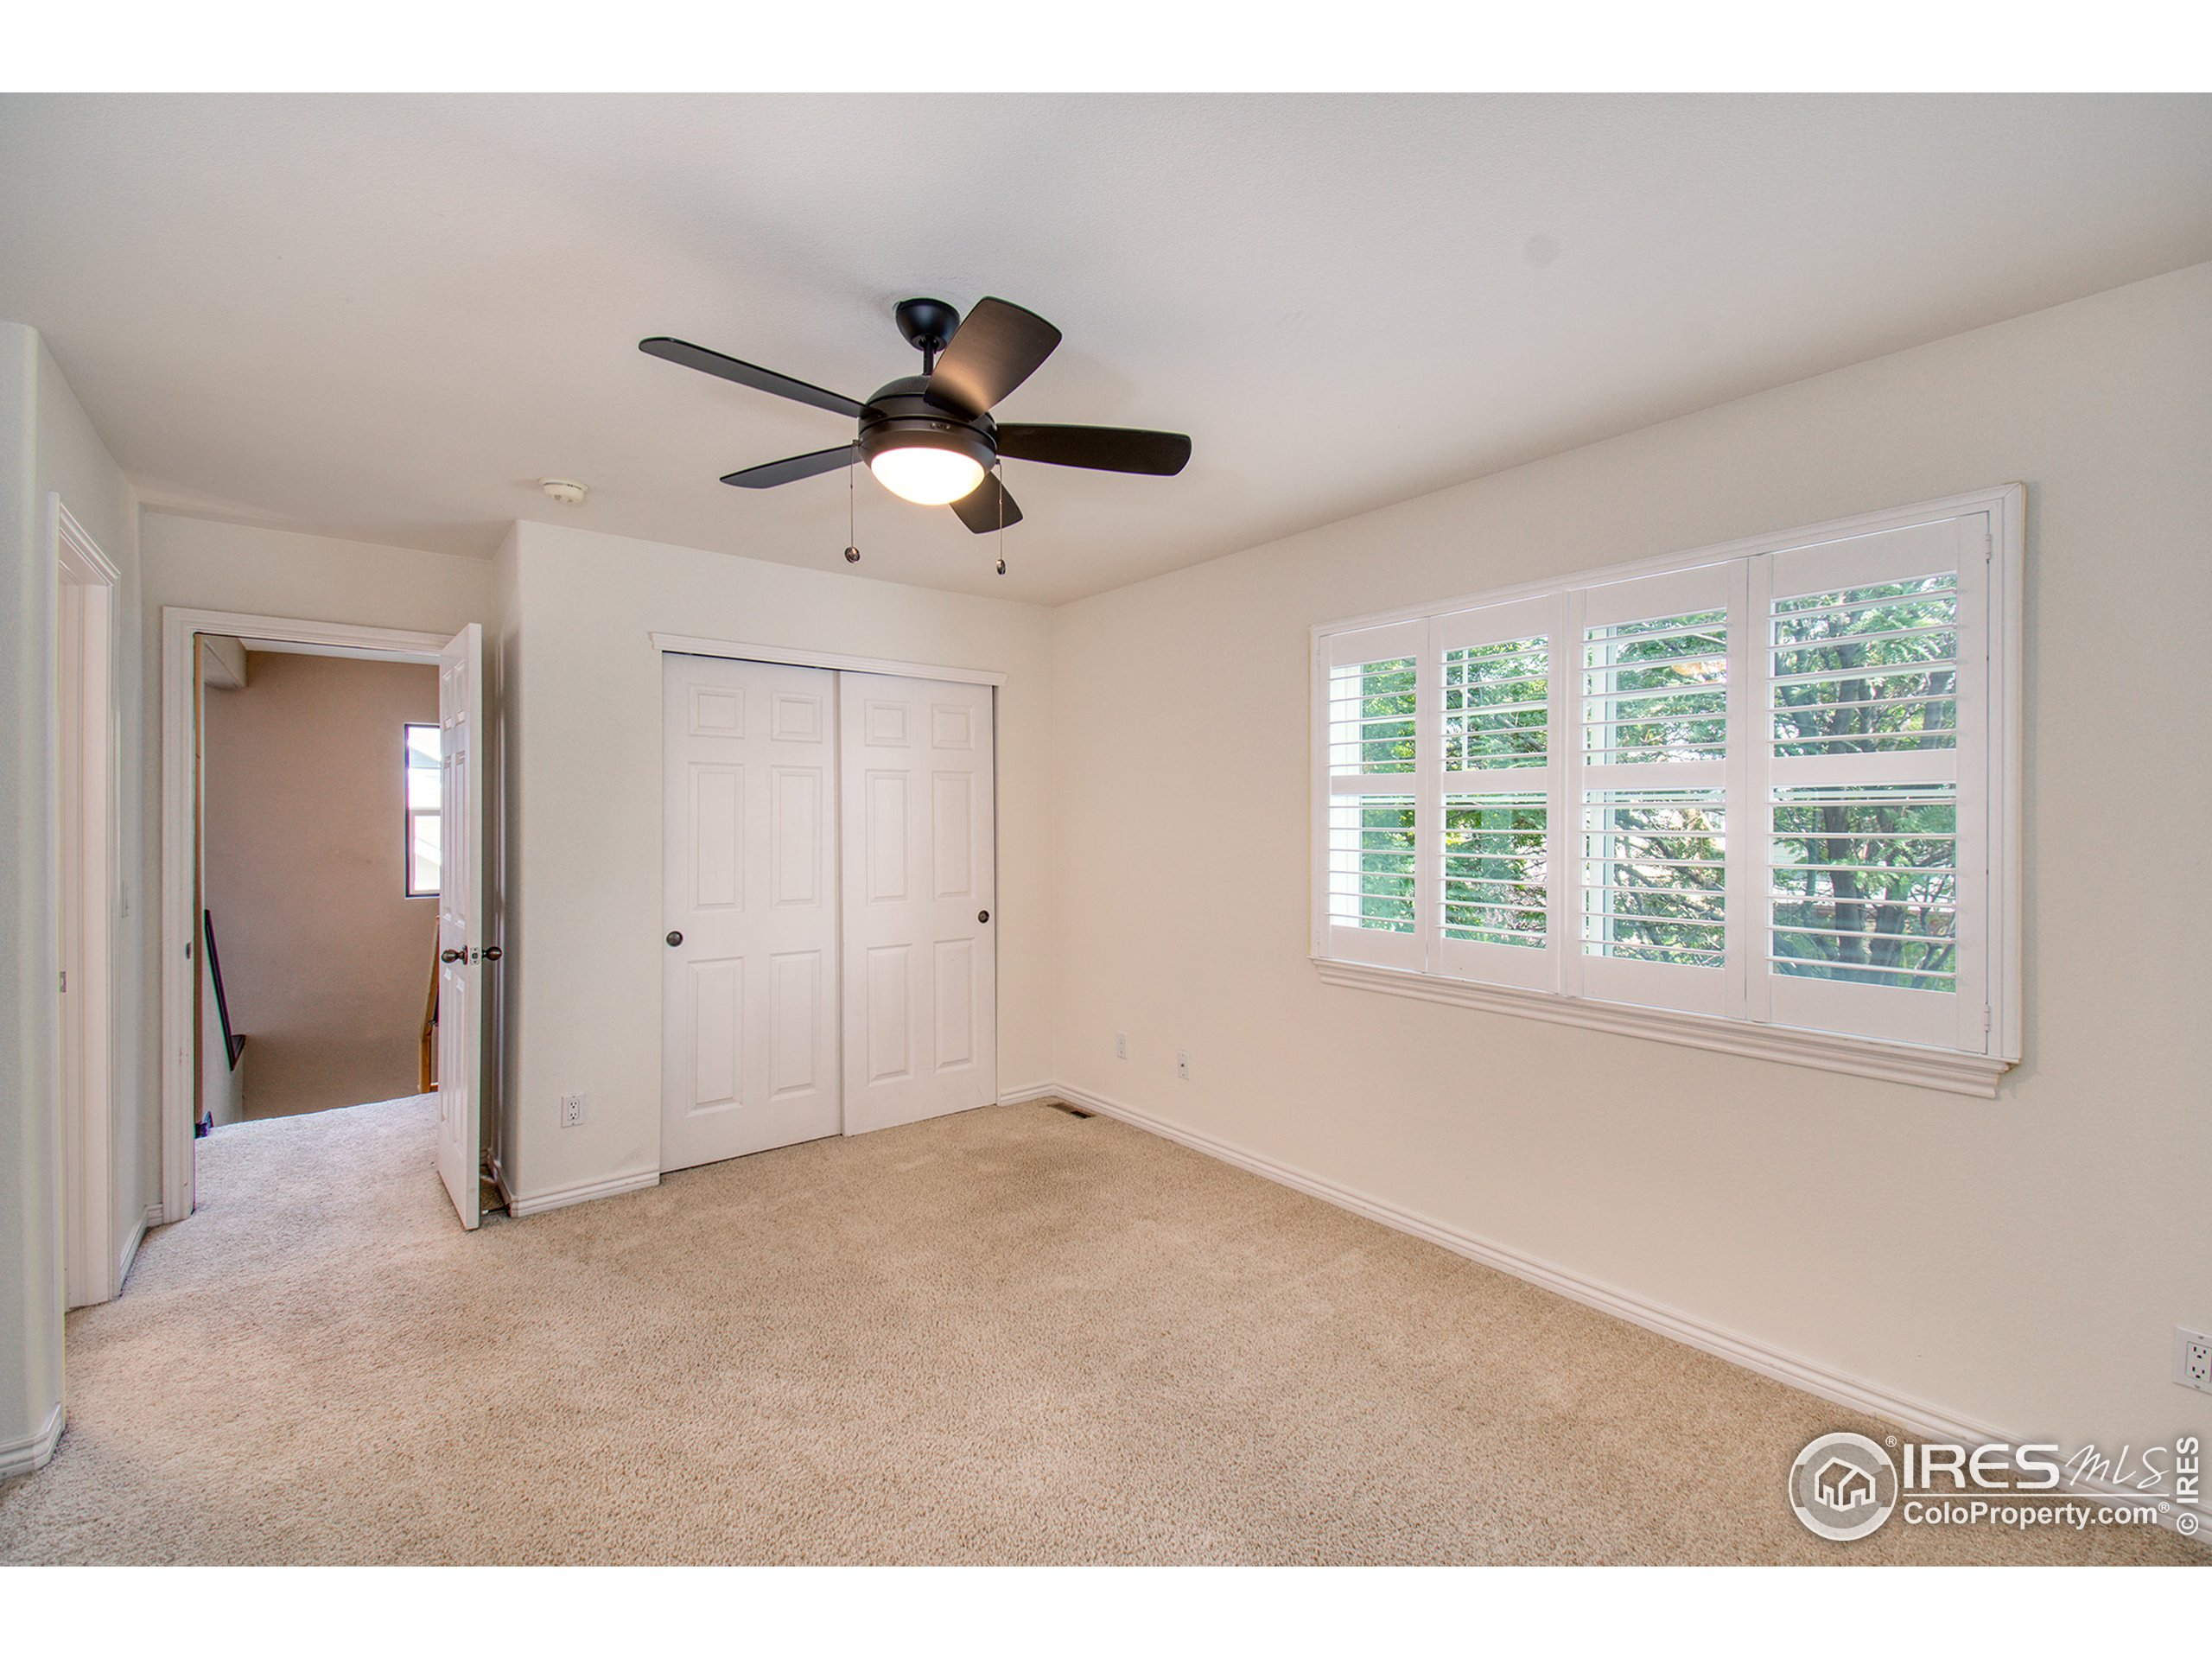 3rd bedroom with plantation shutters.